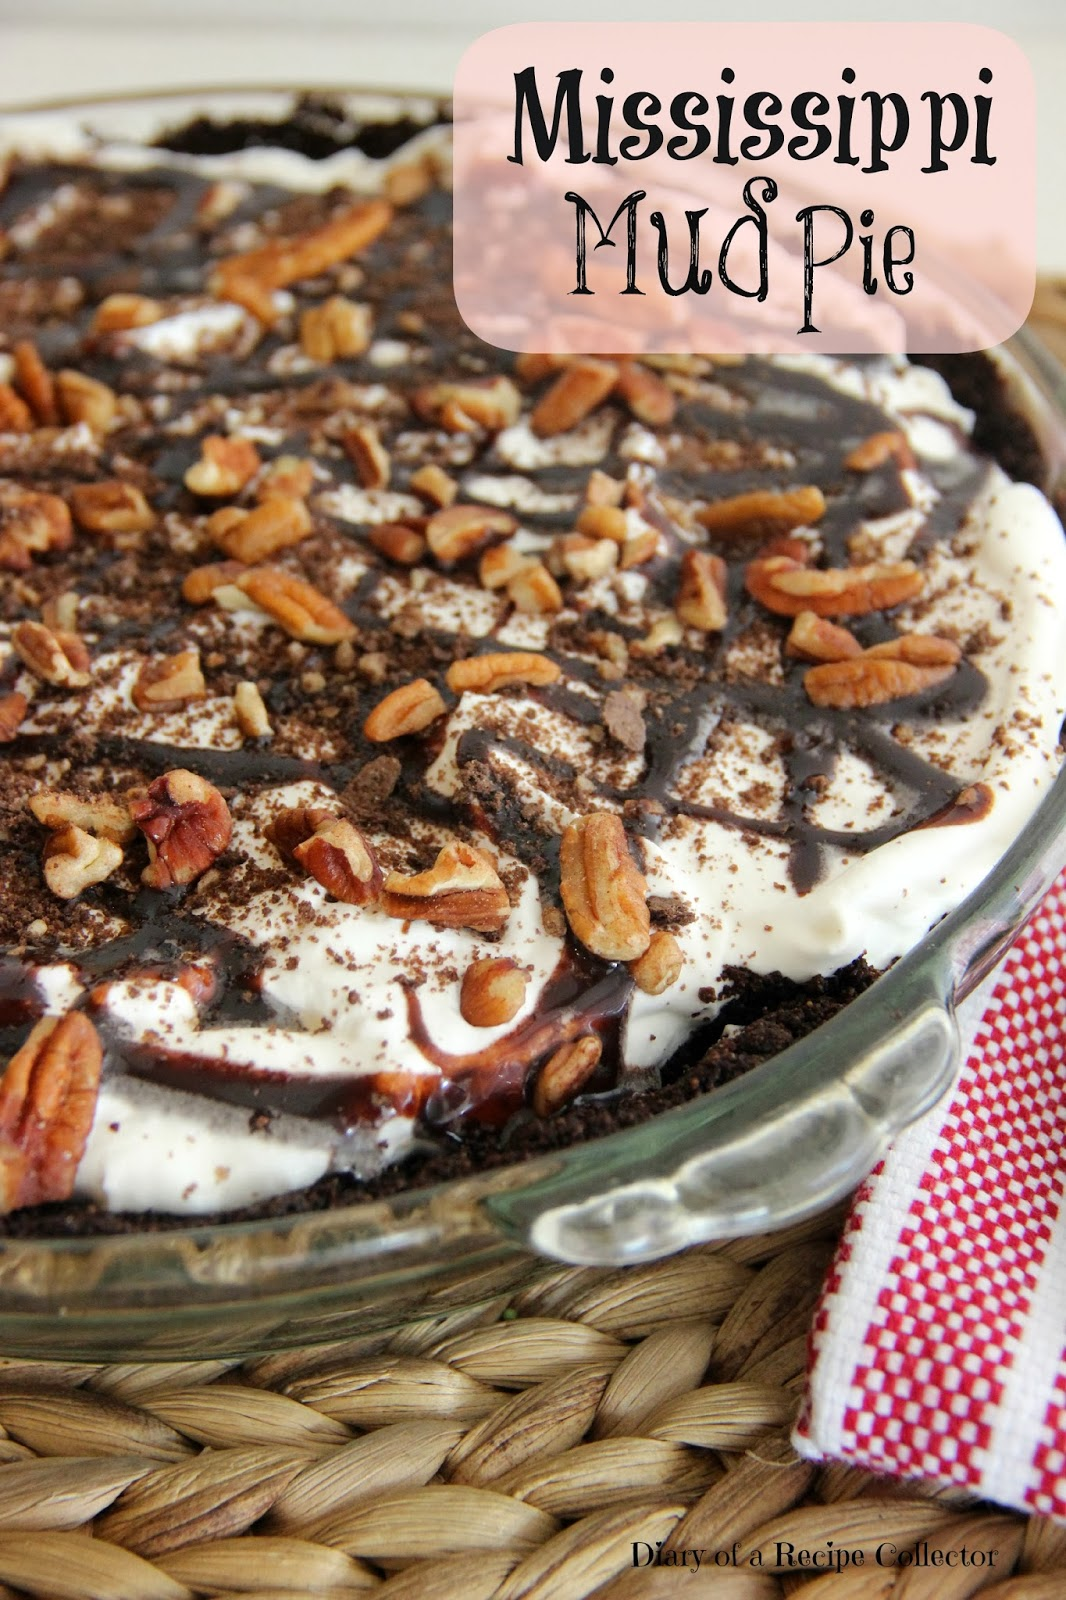 Mississippi Mud Pie Diary Of A Recipe Collector